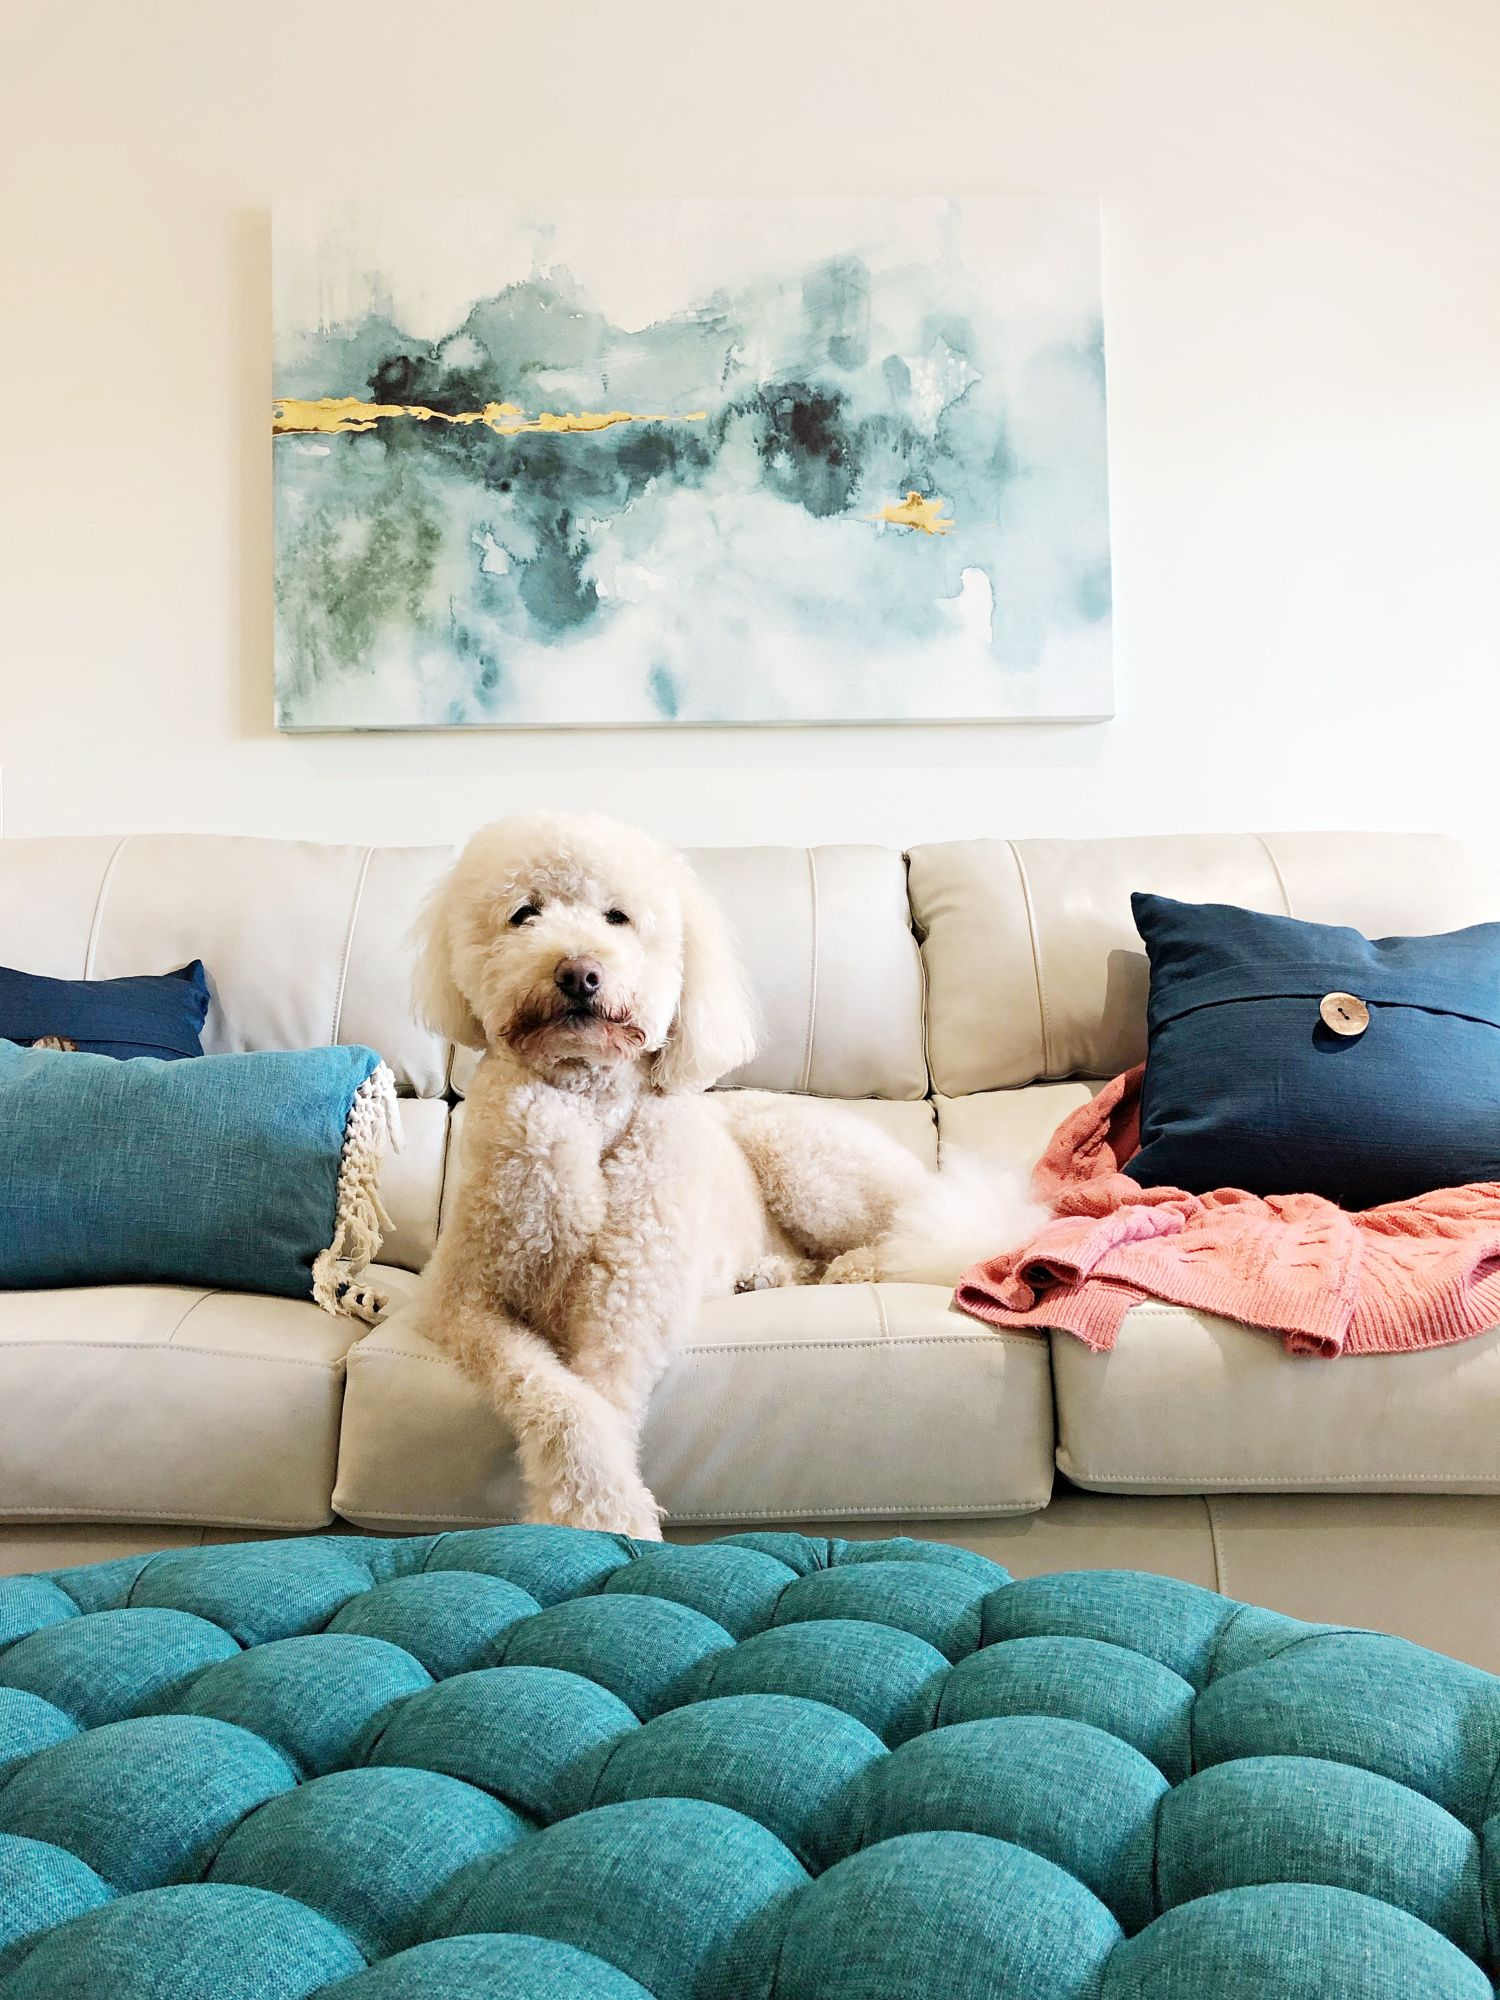 Art With Teal Home Decor Accents Teal Living Room Decor